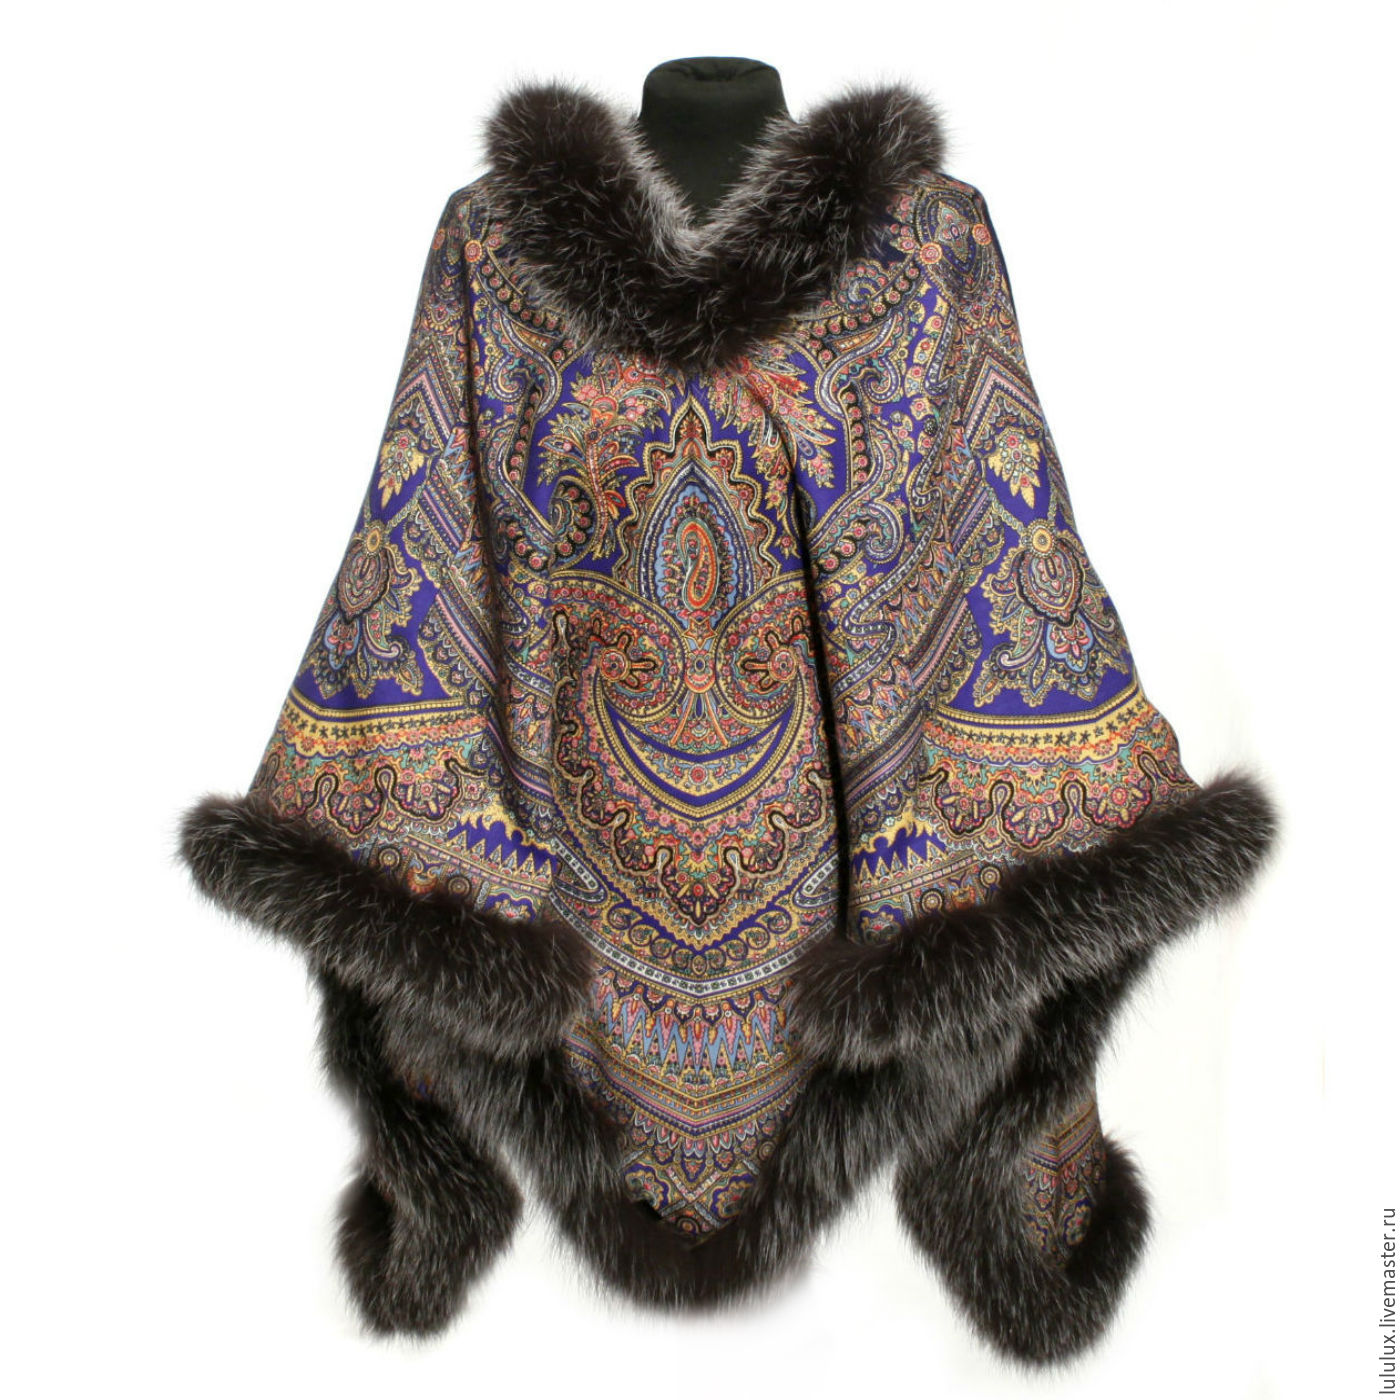 Poncho from a scarf pavlovoposadskaja 'Magical pattern' with fur 1290-14/178, Ponchos, Moscow,  Фото №1